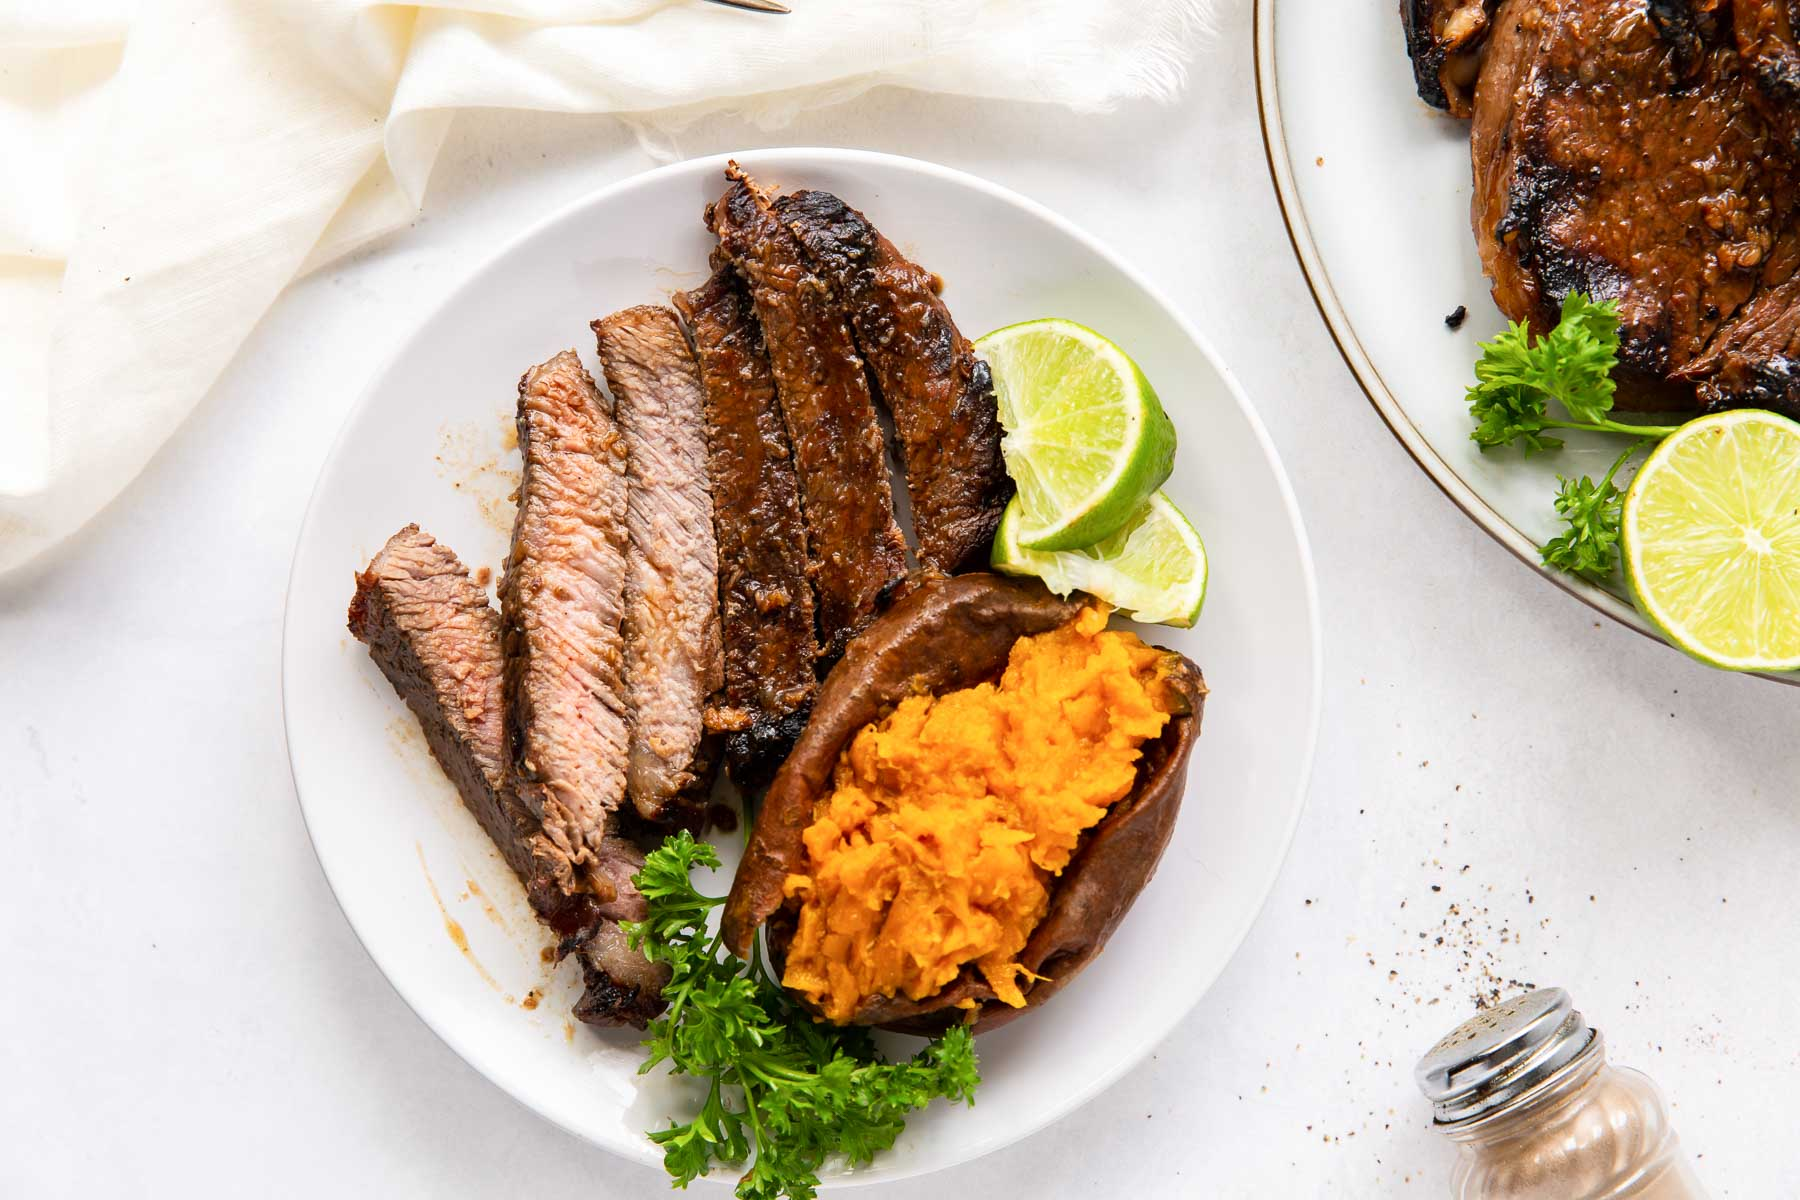 steak sliced and served with baked sweet potato